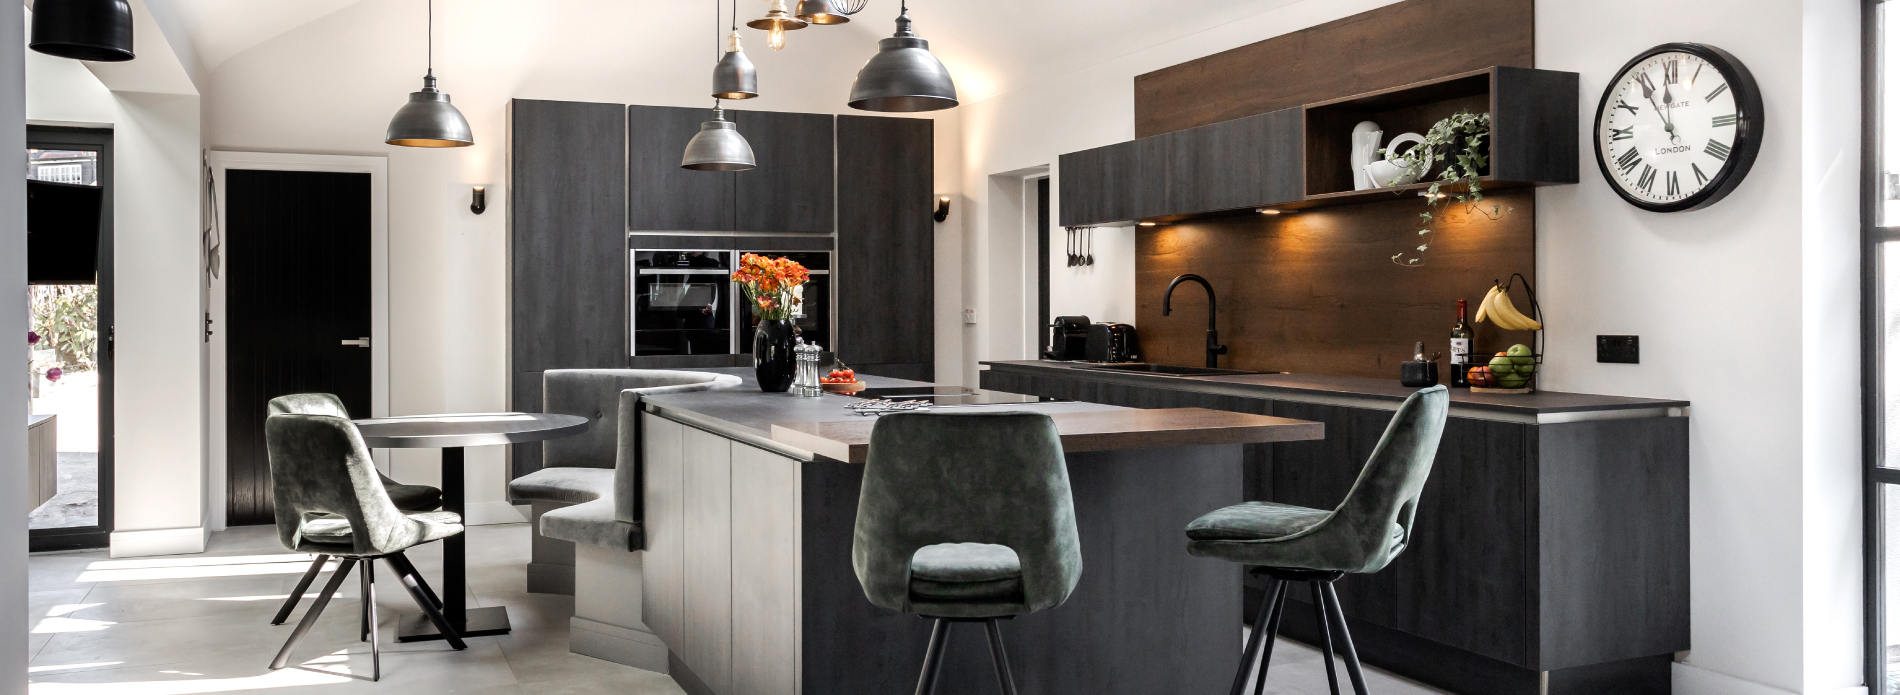 A dark industrial style kitchen with natural tones and textures